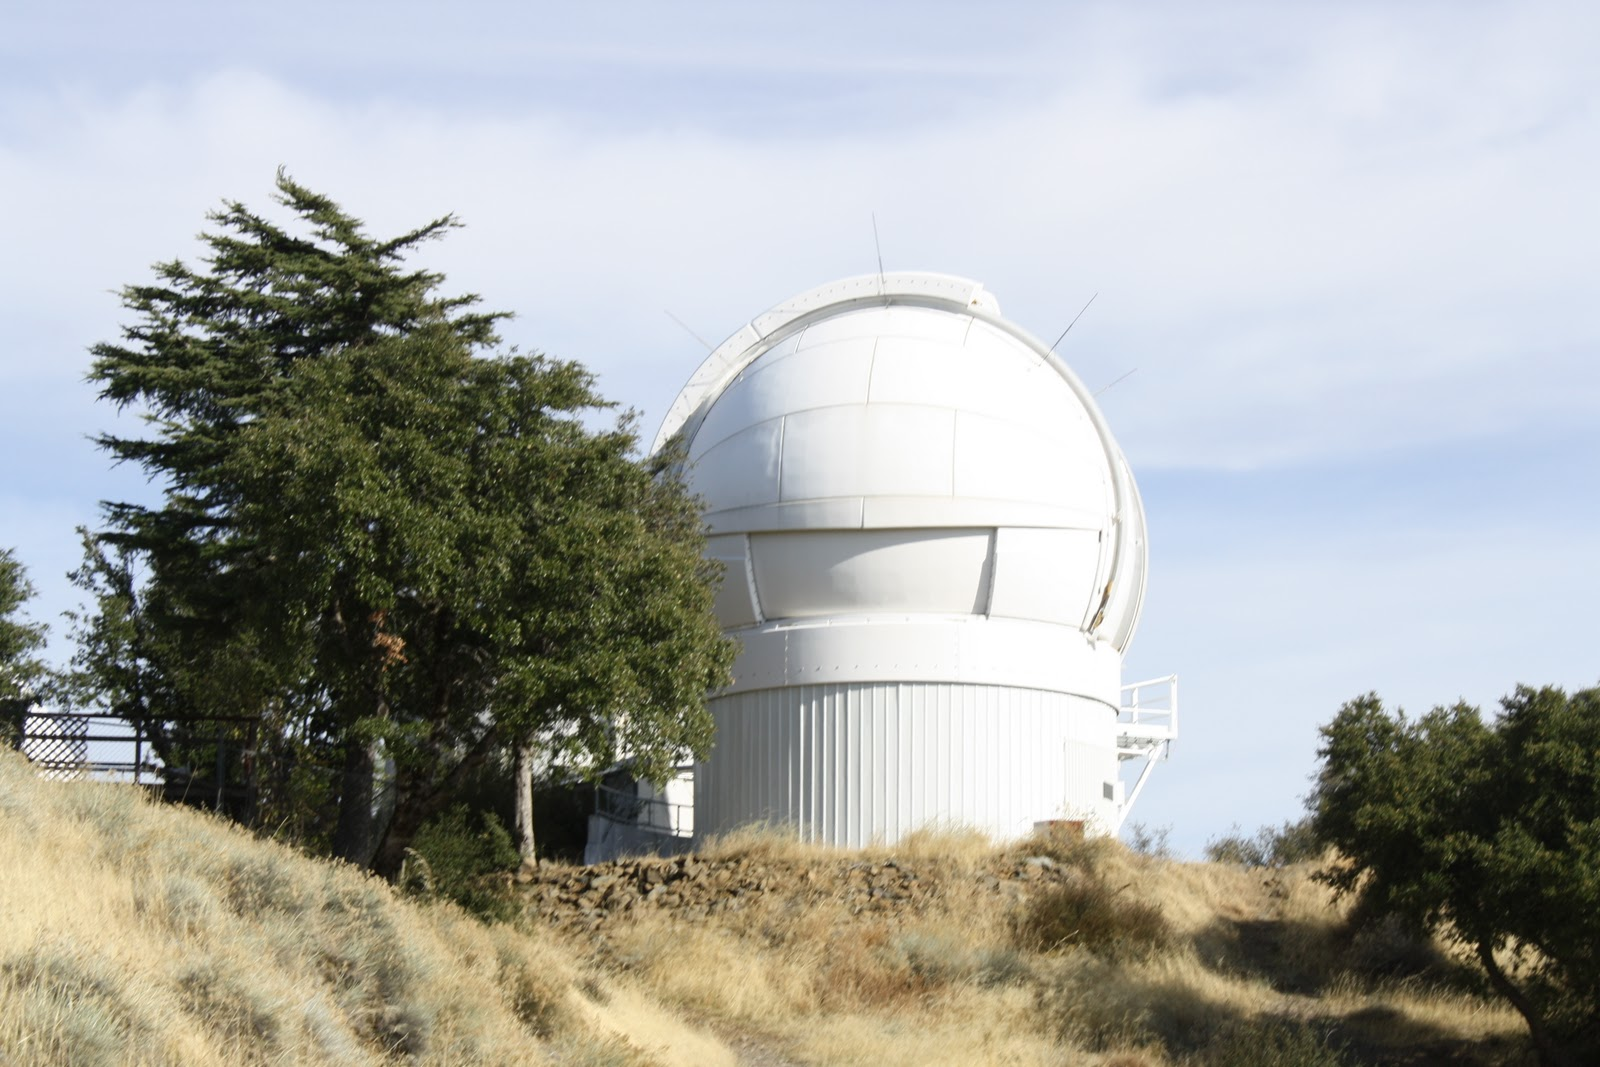 Commit error. Lick observatory meter largest topic